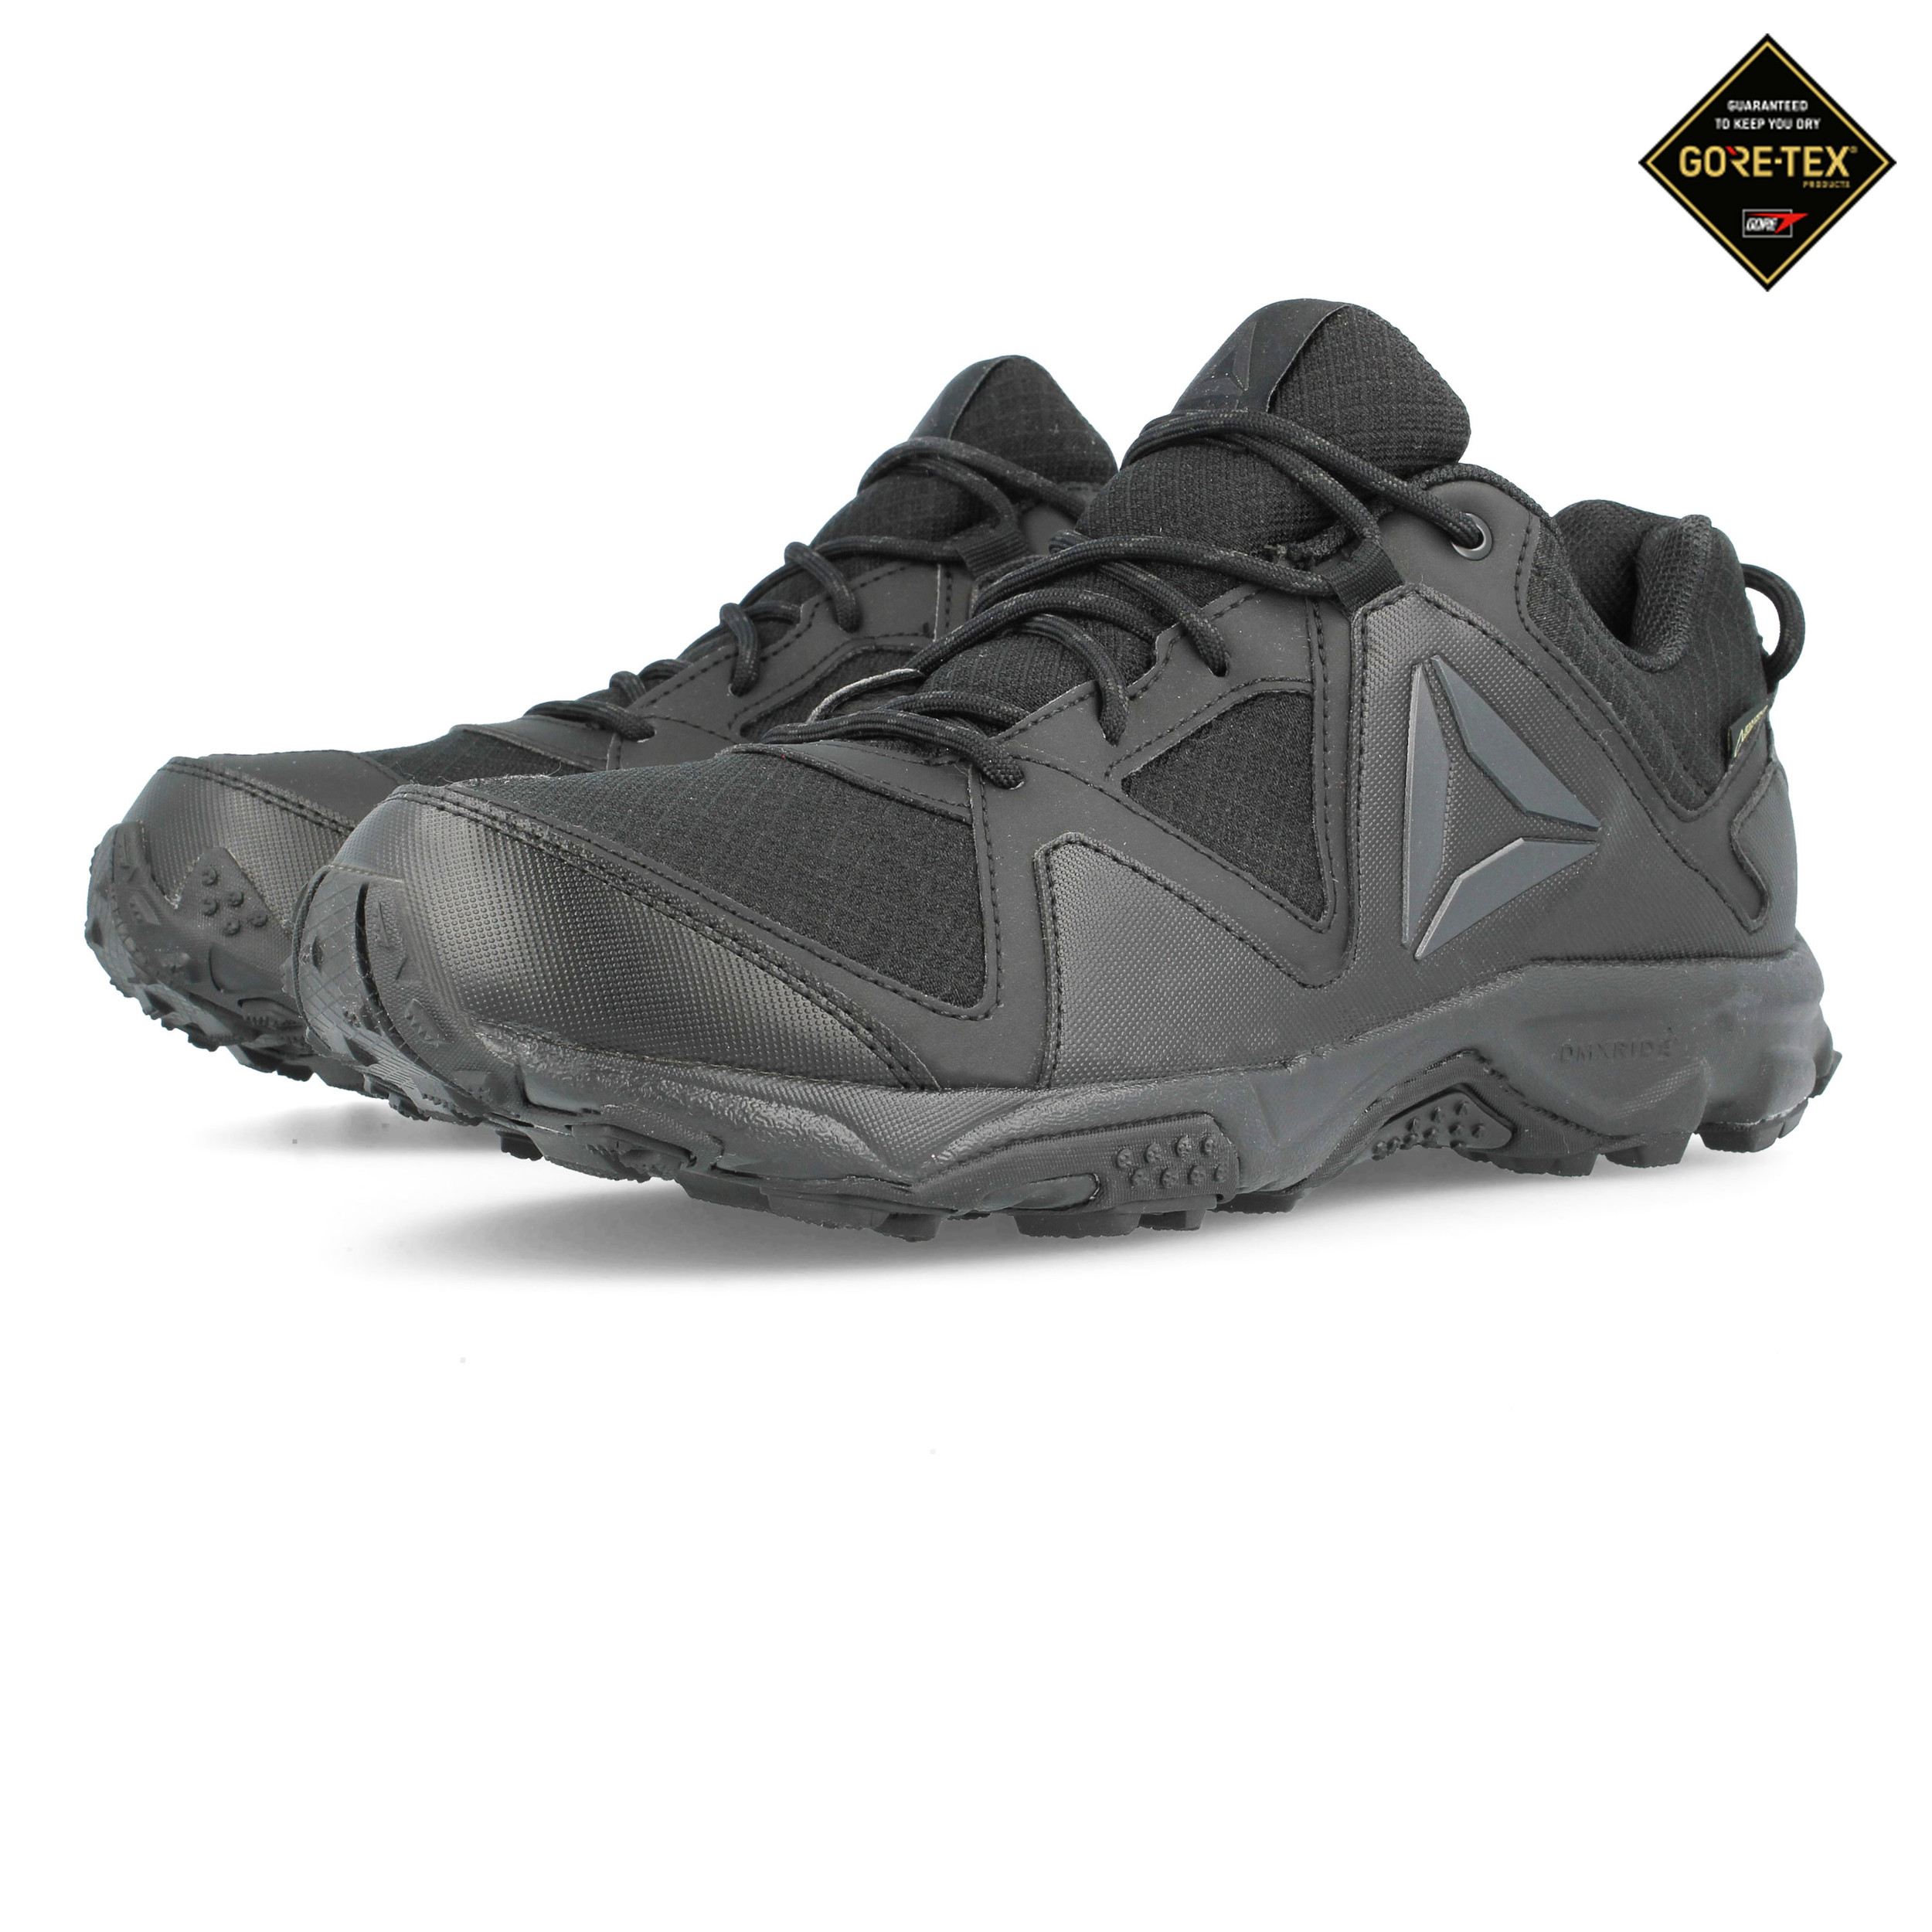 Reebok Womens Franconia Ridge 3.0 Gore-Tex Walking shoes Black Sports Outdoors